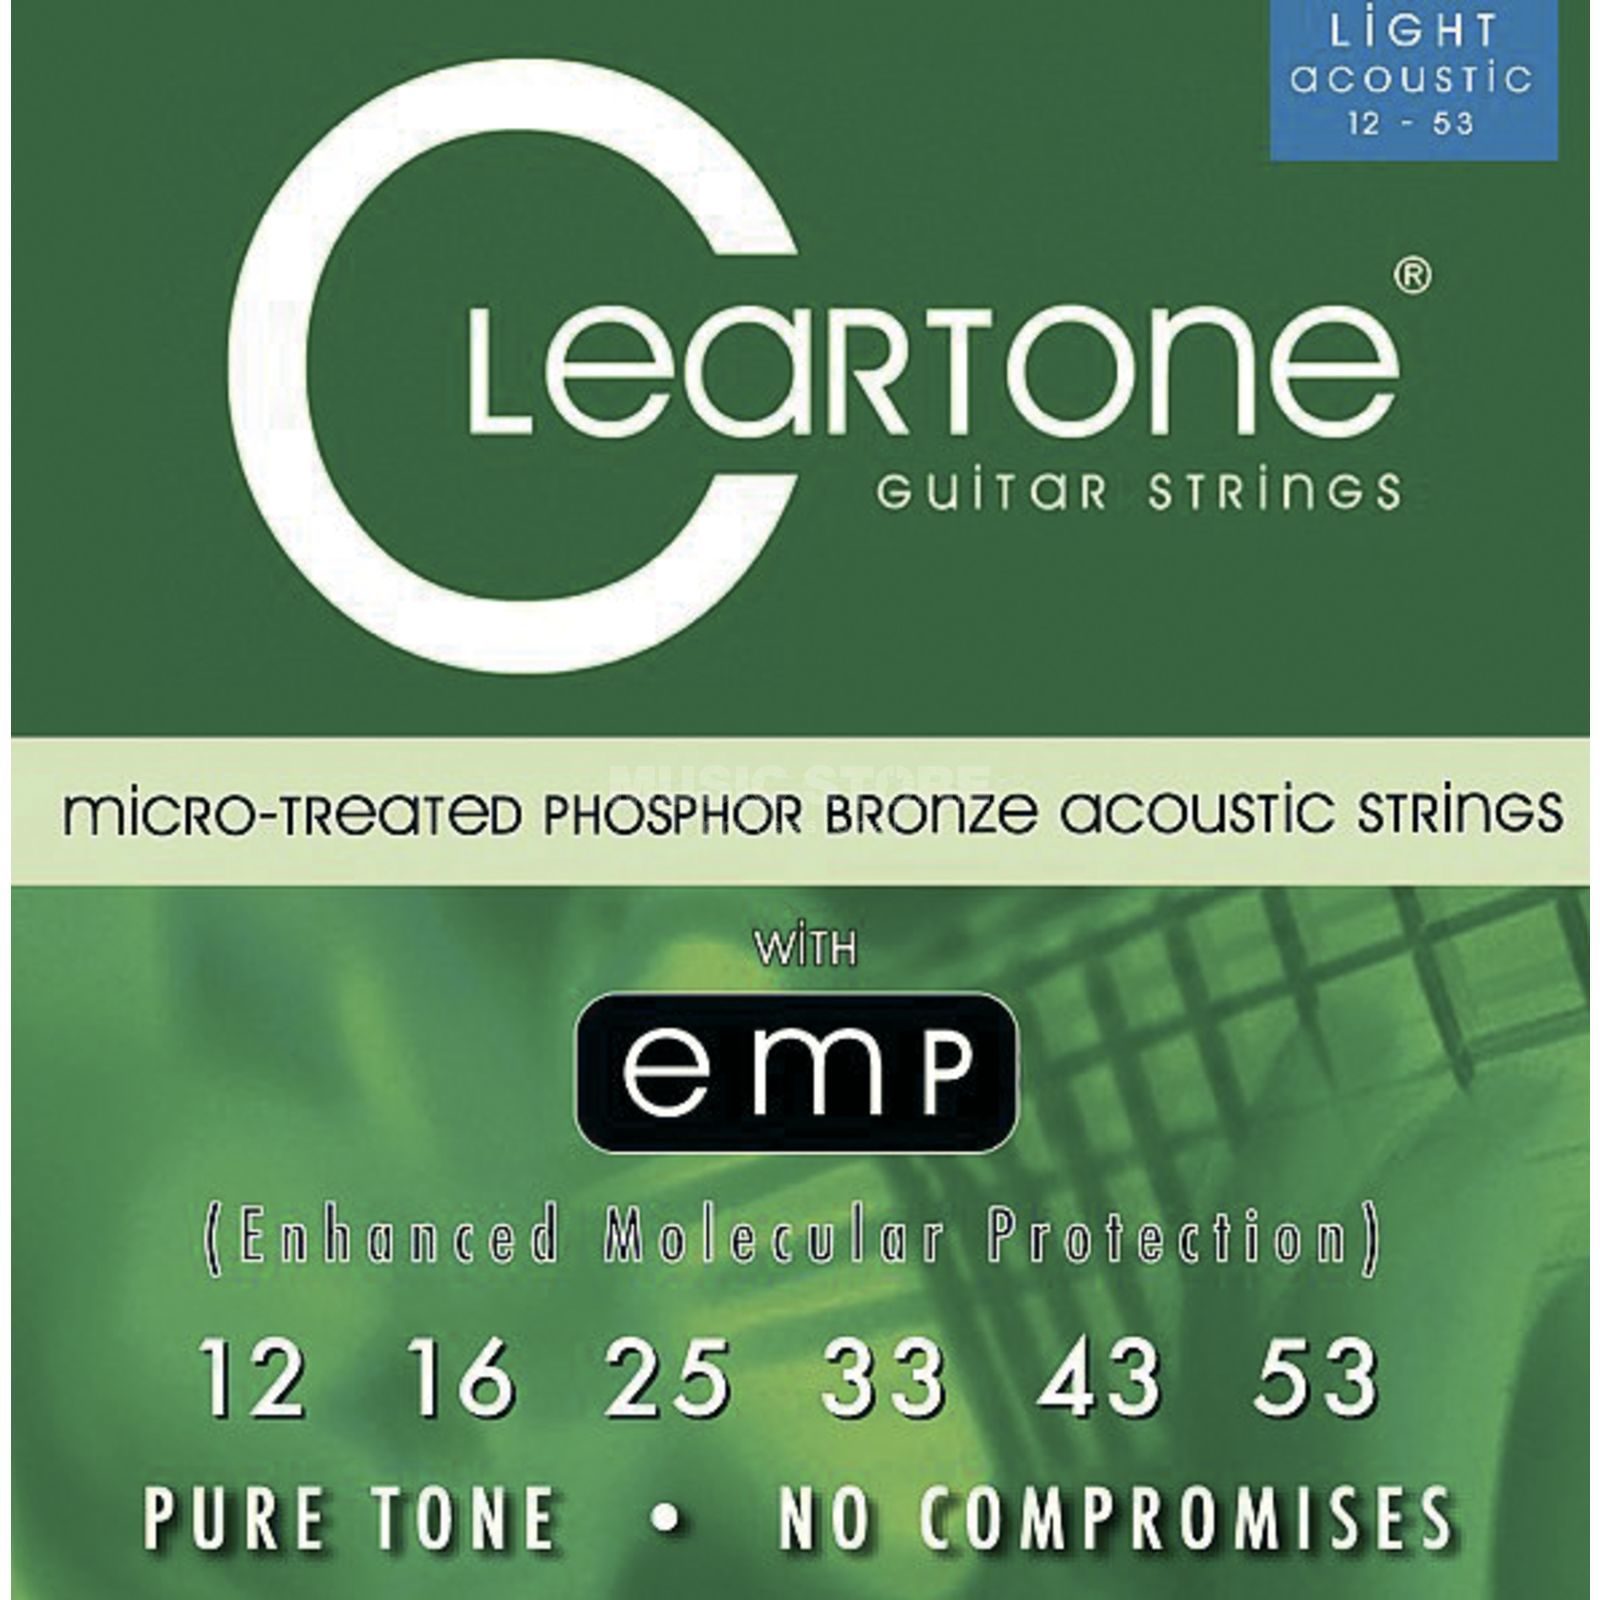 Cleartone A-Guitar Strings 12-53 CT7412 Light, EMP Strings Produktbillede